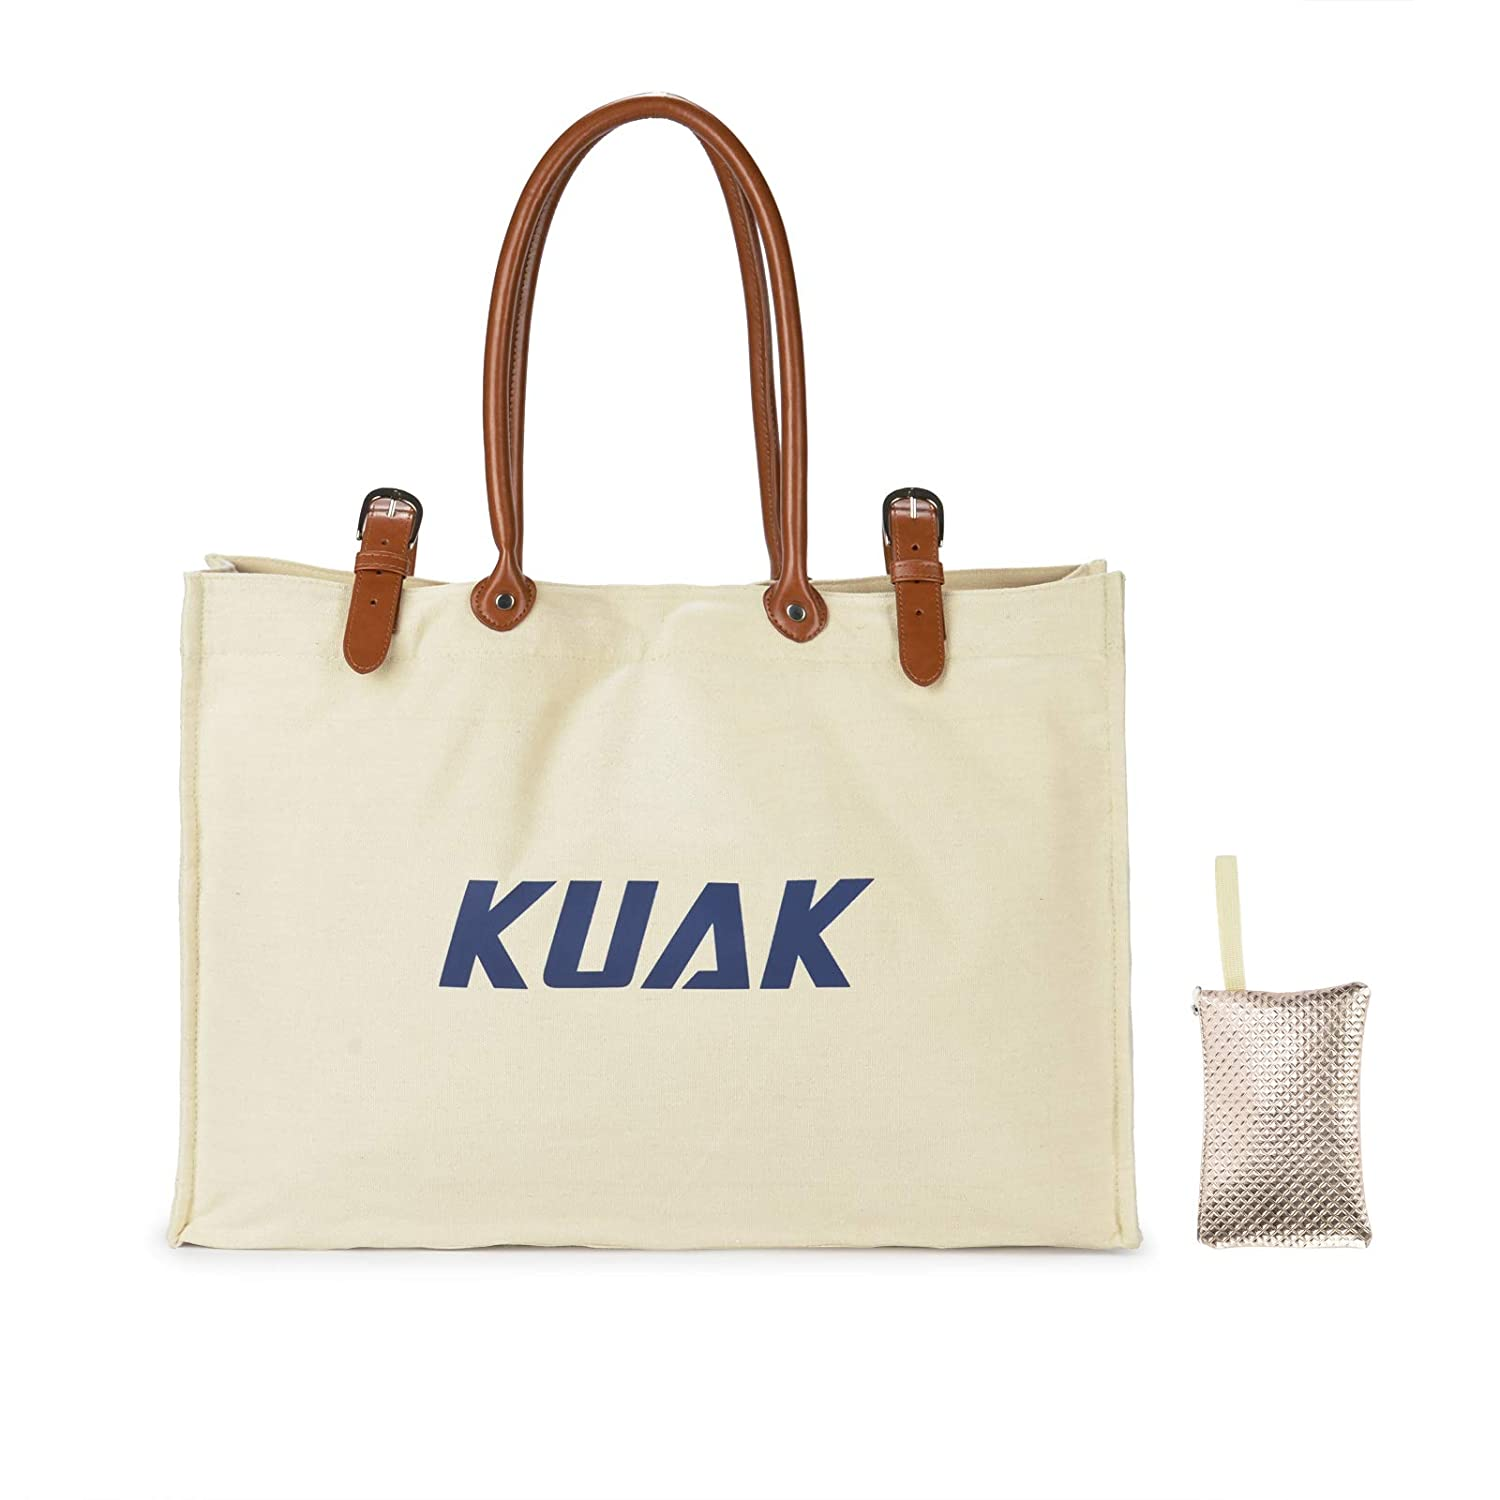 Beach Bag, L22 xH15 xW6 XXL , KUAK Large Waterproof Beach Bag with Leather Handles, Top Magnet Clasp, Multi-inside Pockets. Beach Bags and Totes Built-In Waterproof Phone Case, Coin Pouch